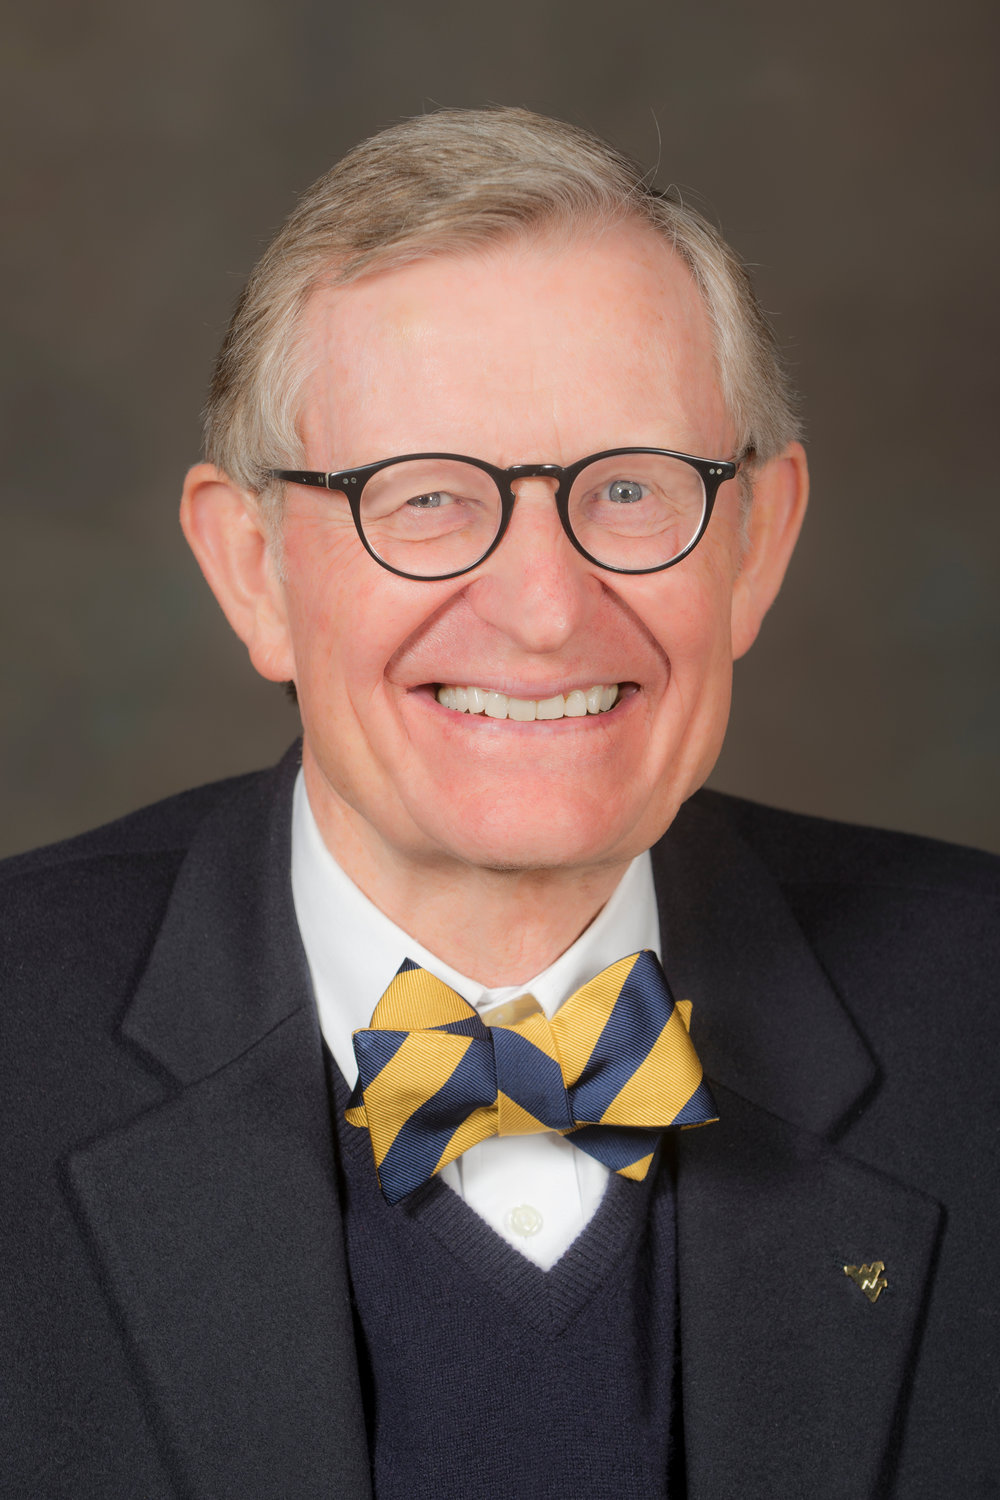 E. Gordon Gee